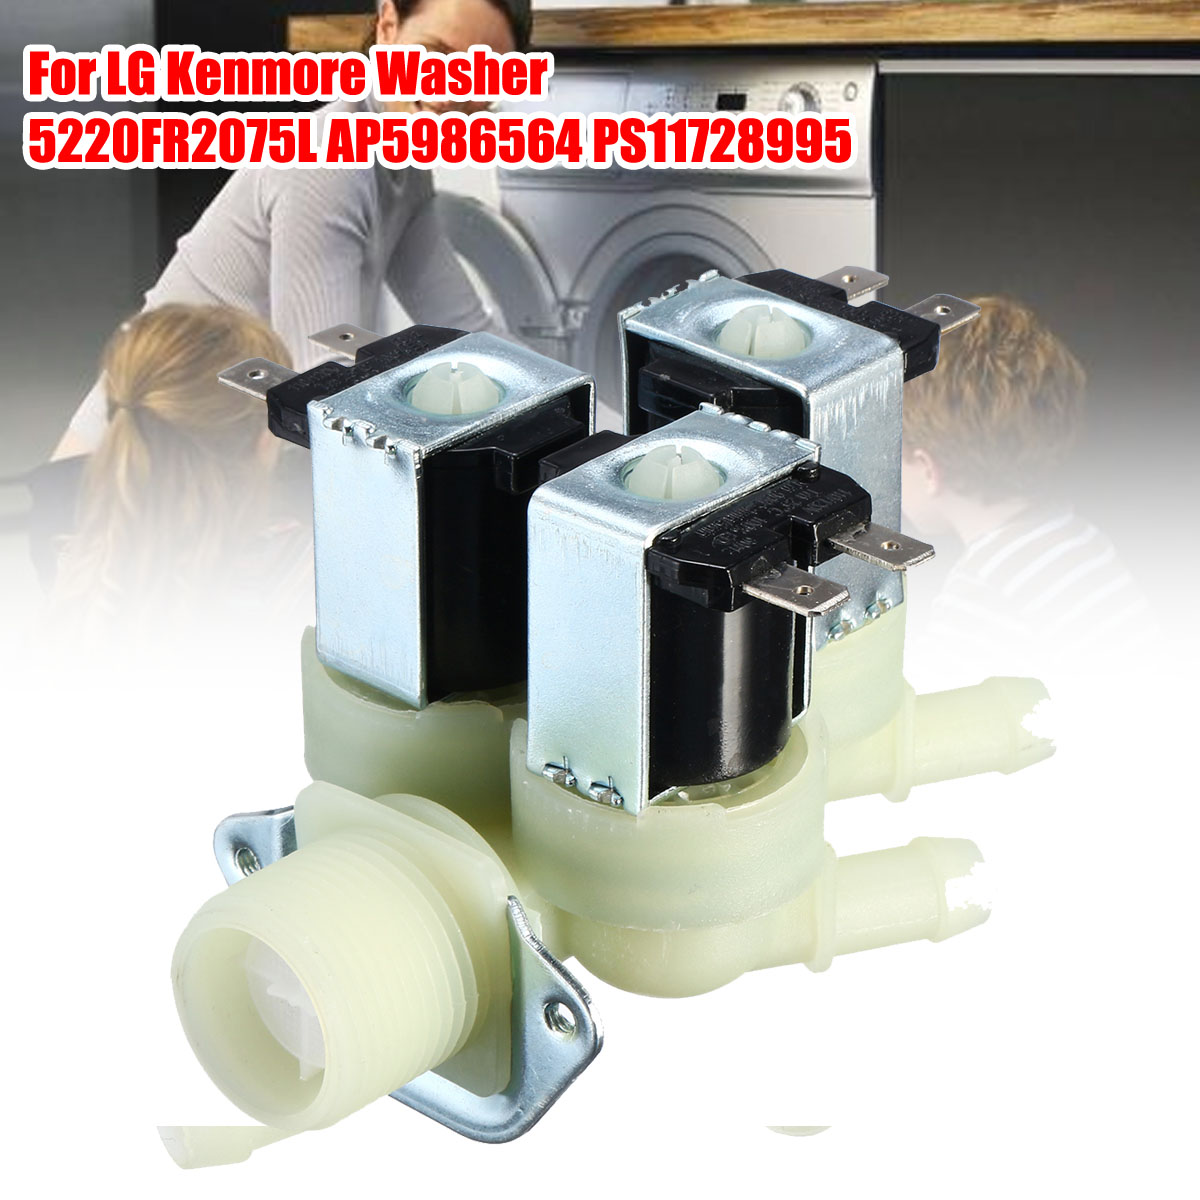 Washer Water Inlet Valve Replacement Accessories for LG Kenmore Washer 5220FR2075L AP5986564 PS11728995Washer Water Inlet Valve Replacement Accessories for LG Kenmore Washer 5220FR2075L AP5986564 PS11728995